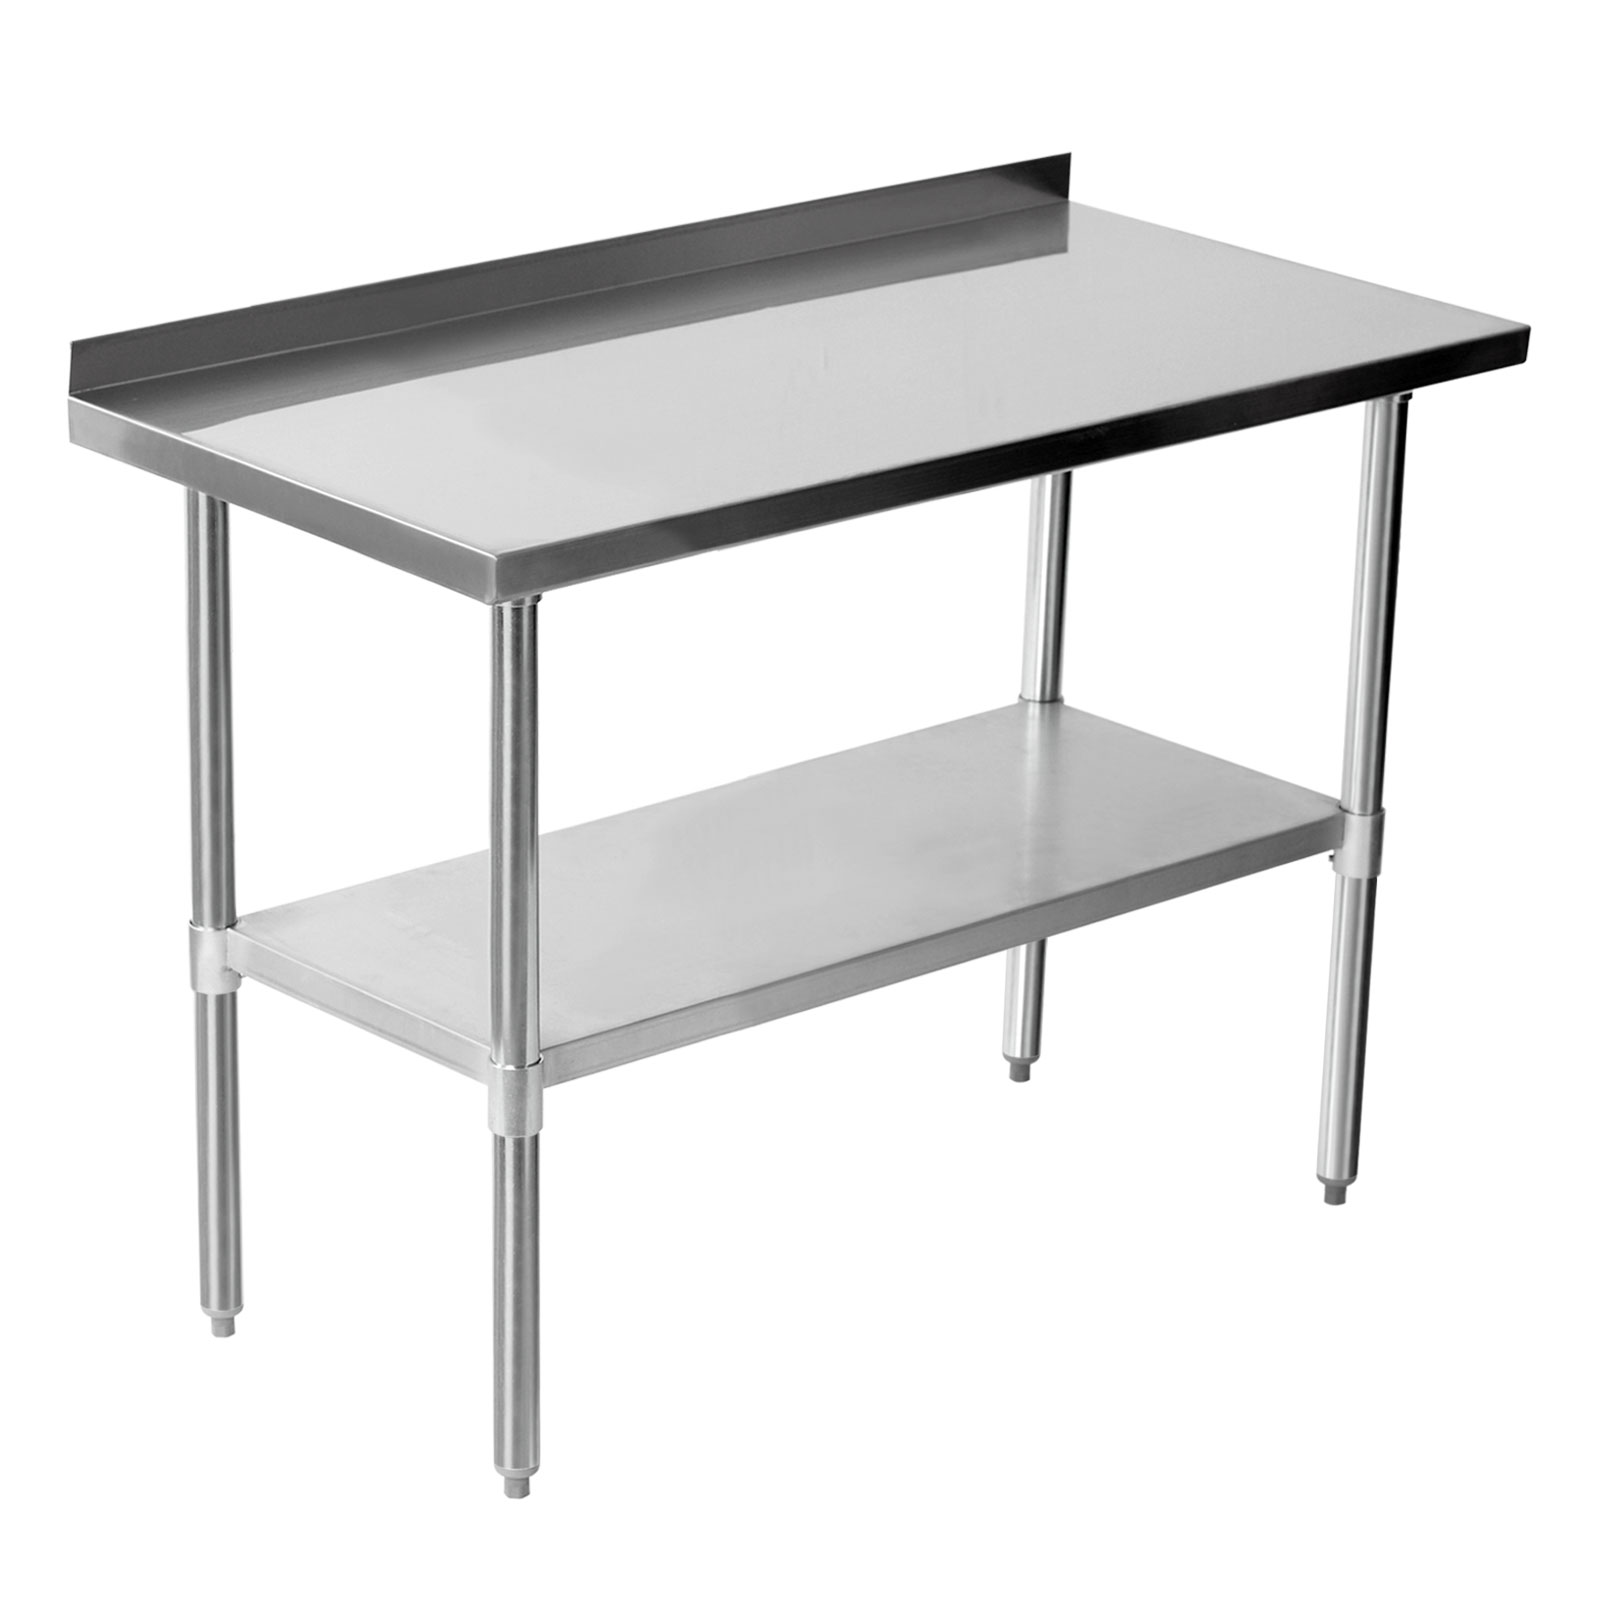 stainless steel catering table backsplash work bench kitchen